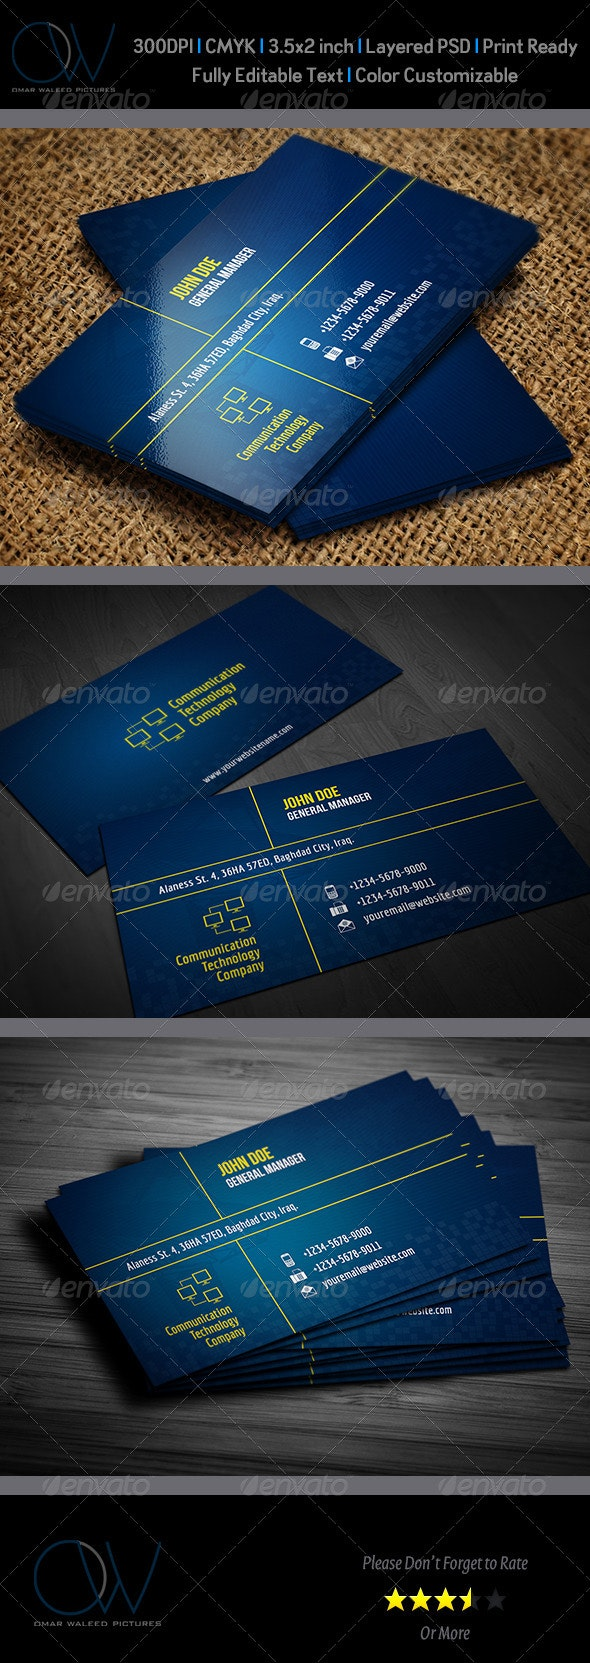 Communication Technology Business Card - Creative Business Cards